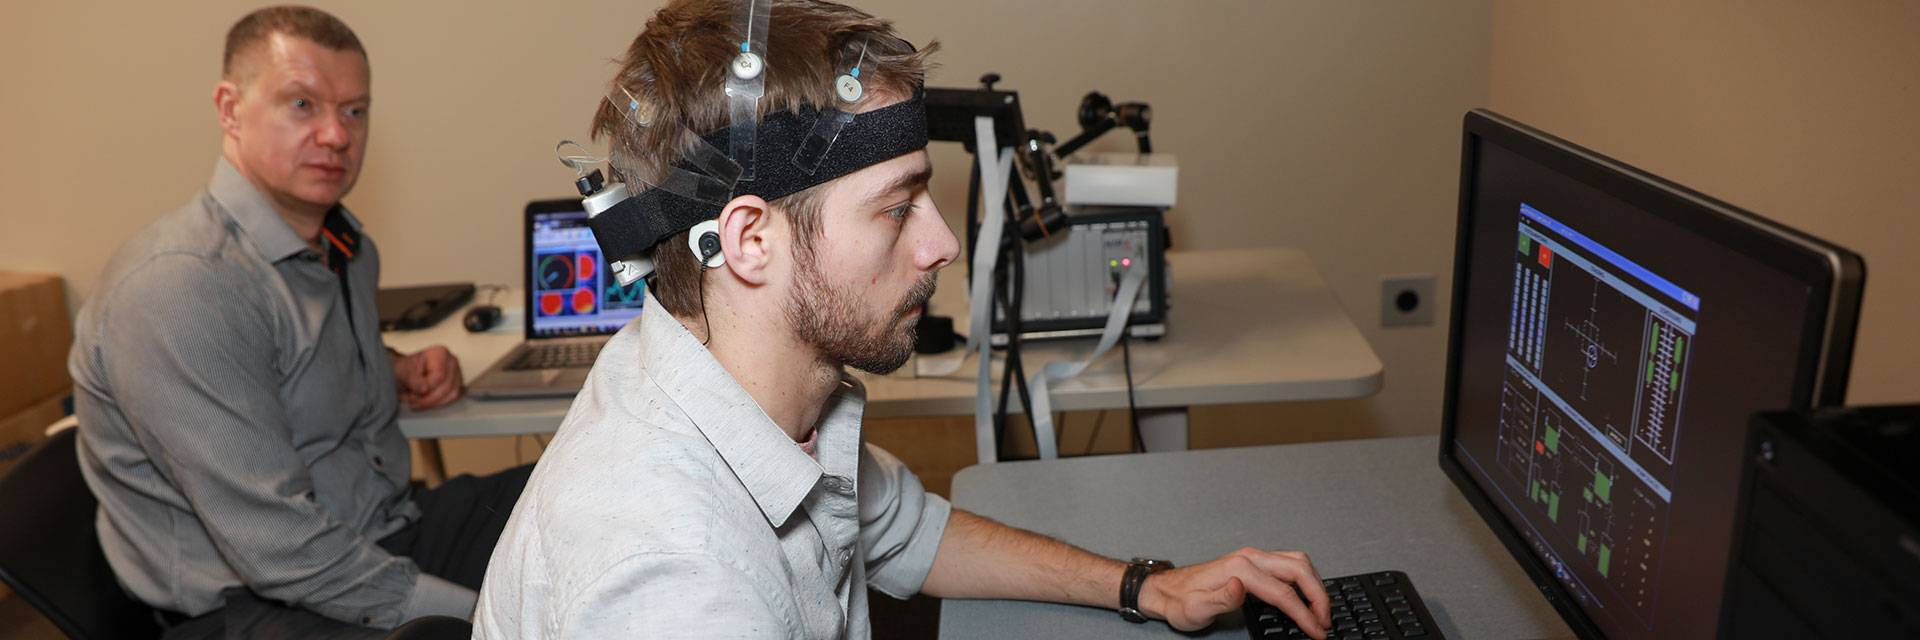 tracking brain movements in psychology study